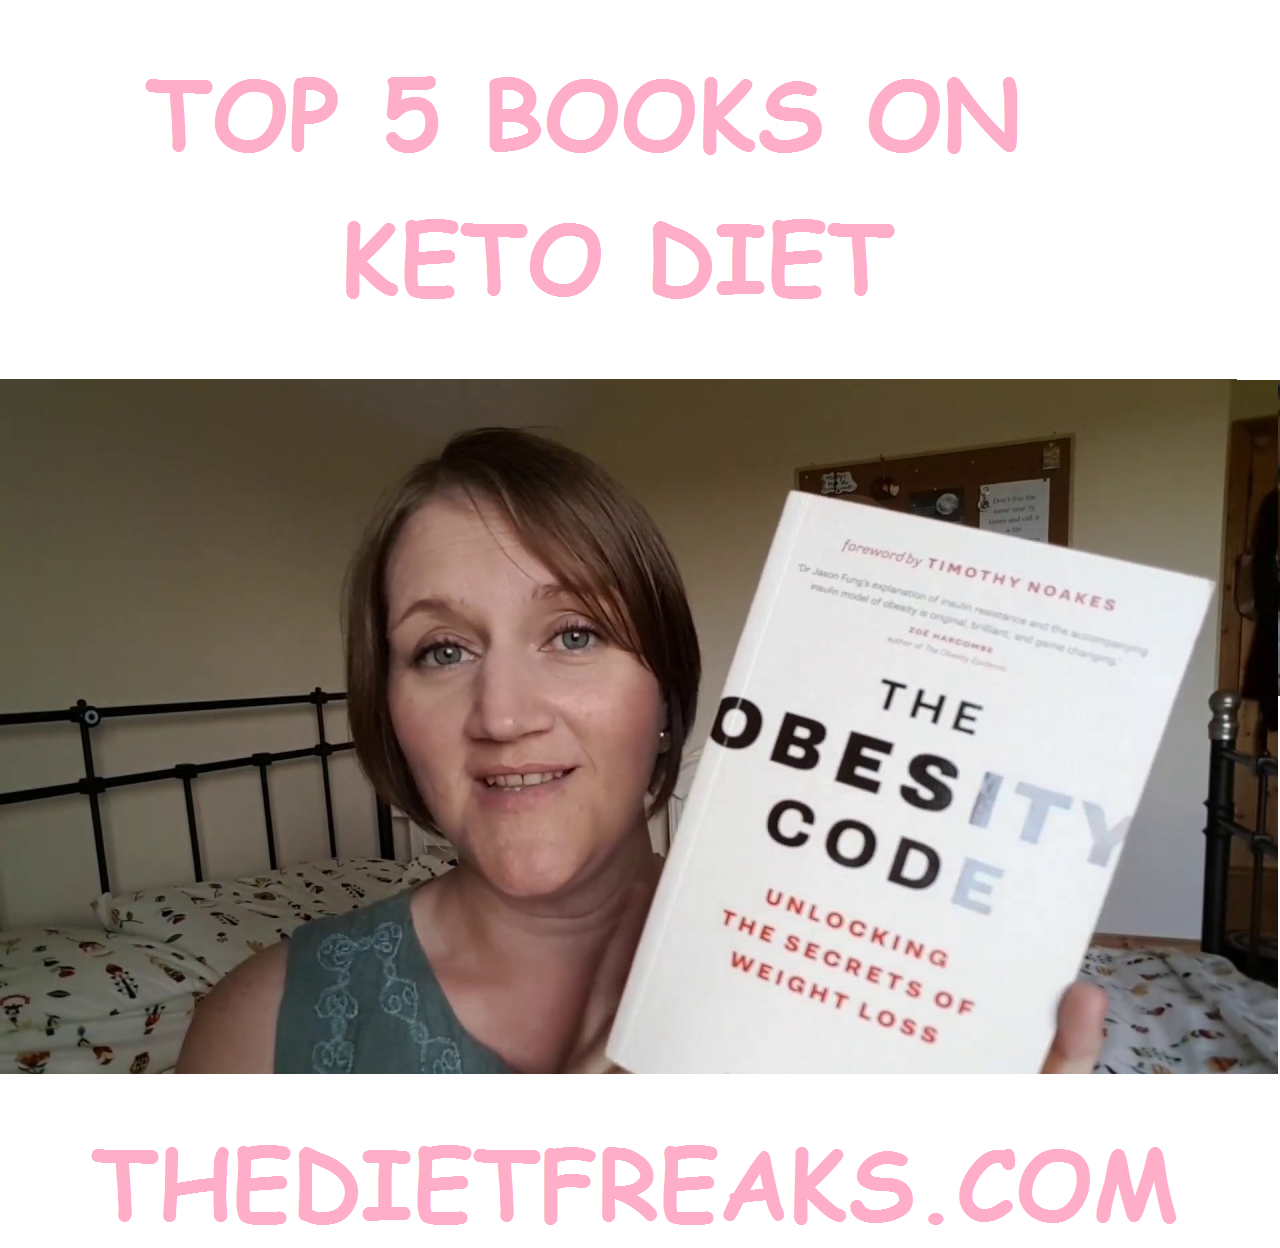 Top 5 book en keto diet